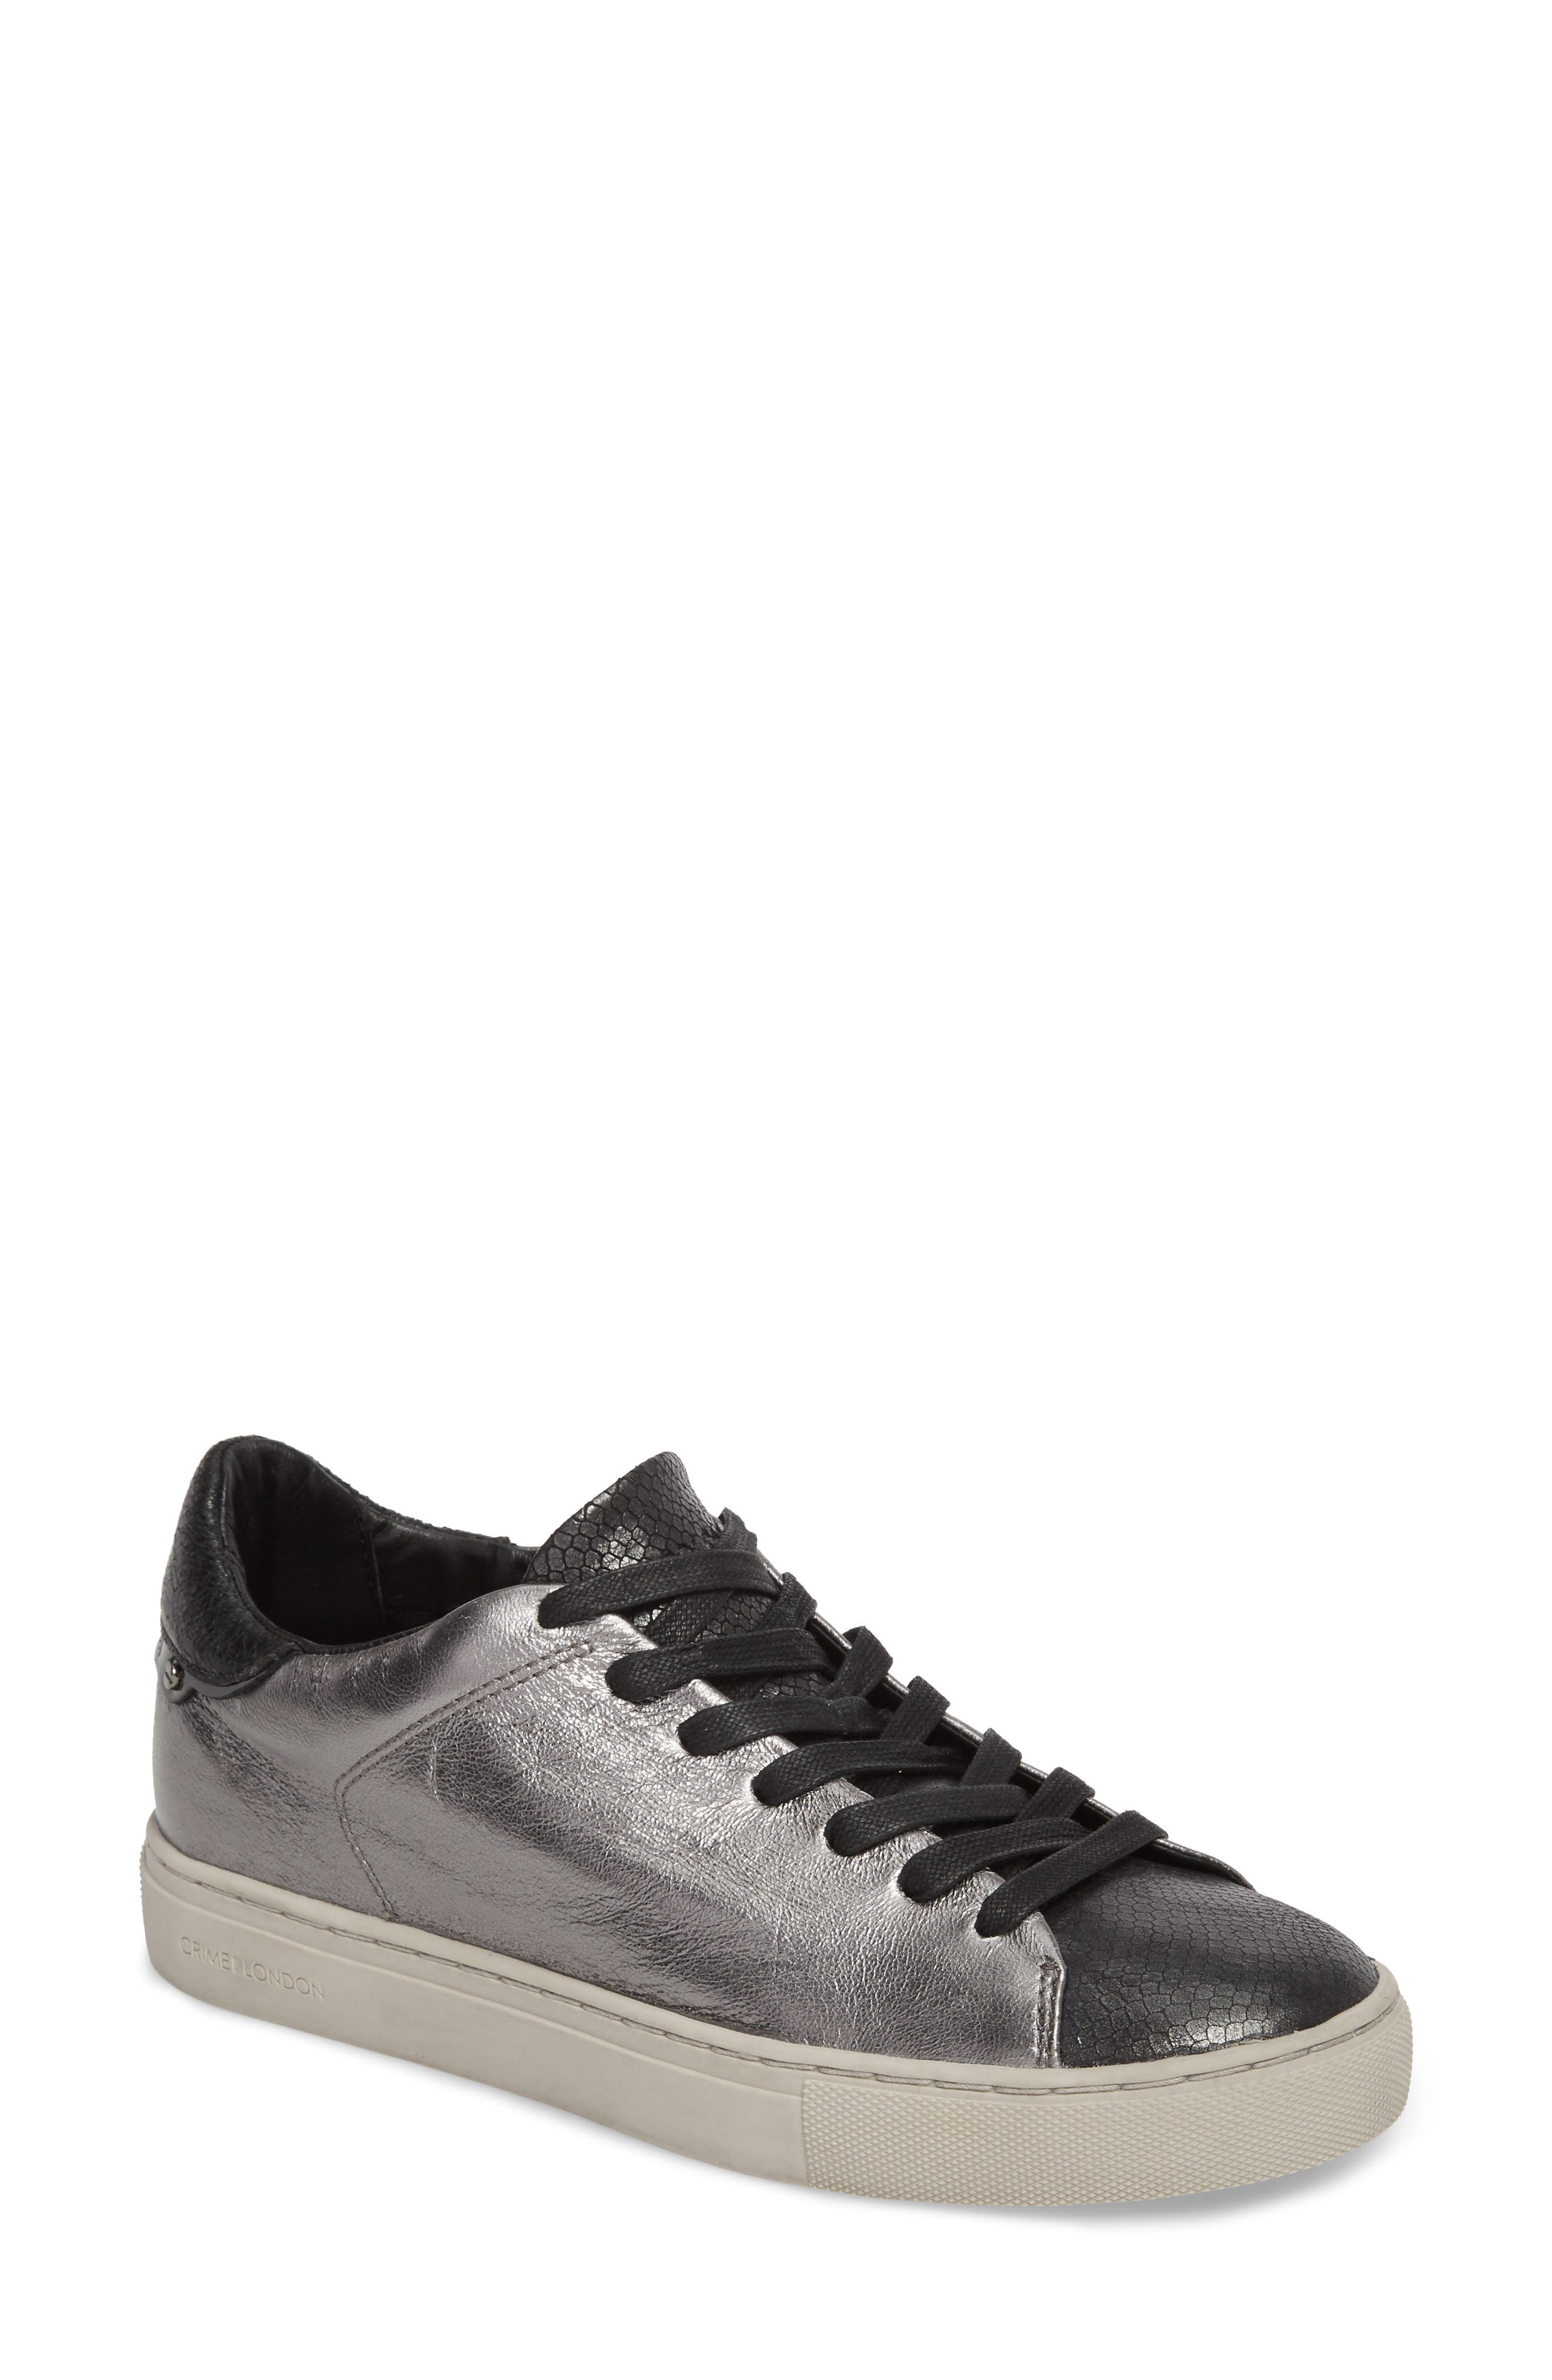 Beat Sneaker,                         Main,                         color, Gray - 62